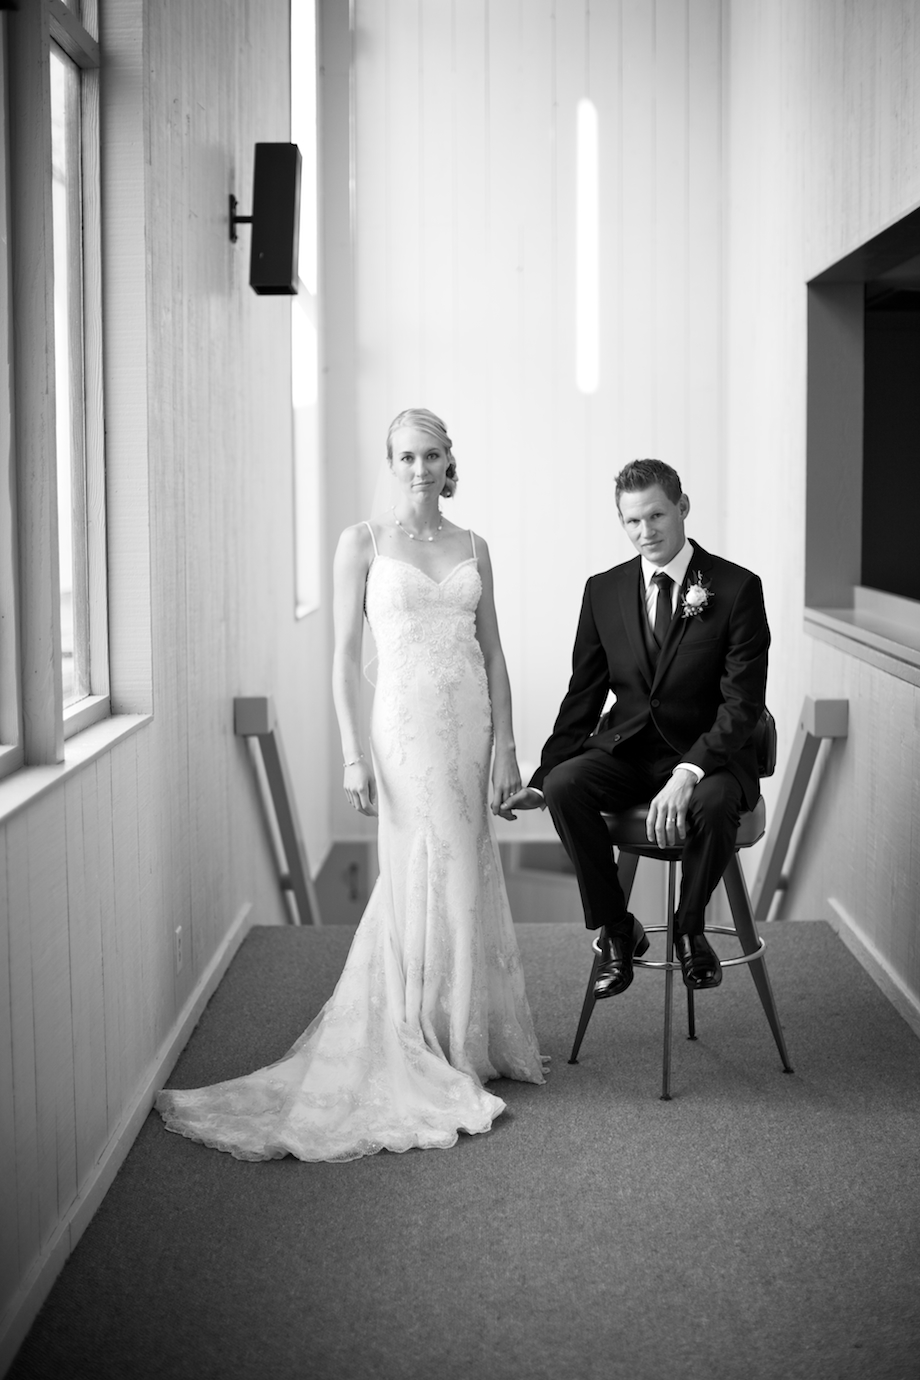 editorial style wedding portrait